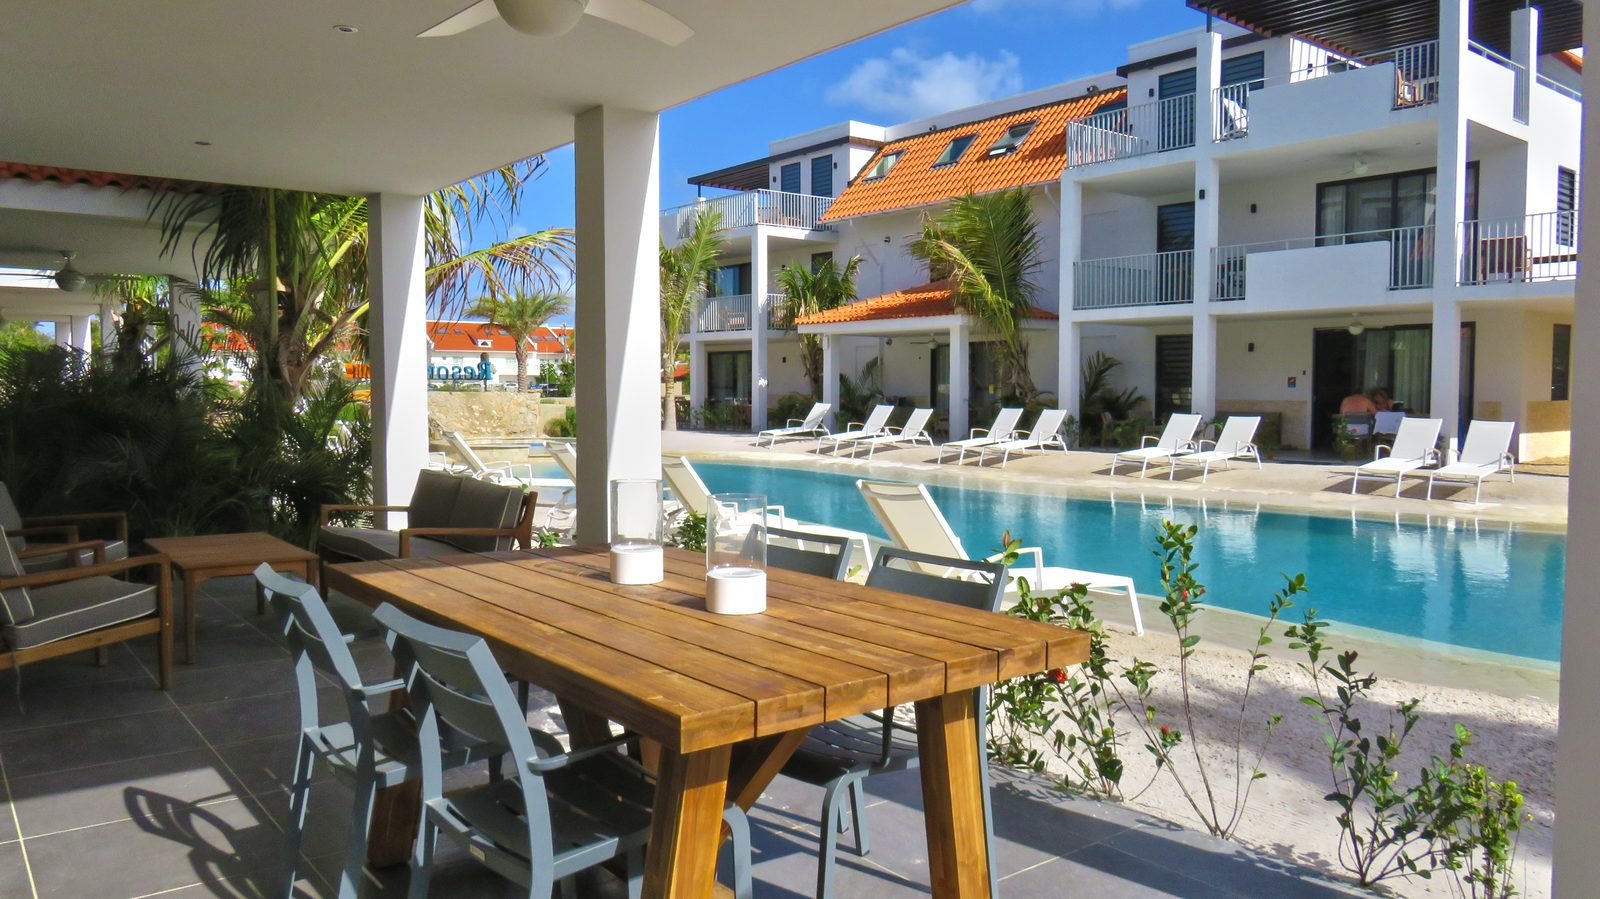 Bonaire apartments from Resort Bonaire are perfect for couples and families.